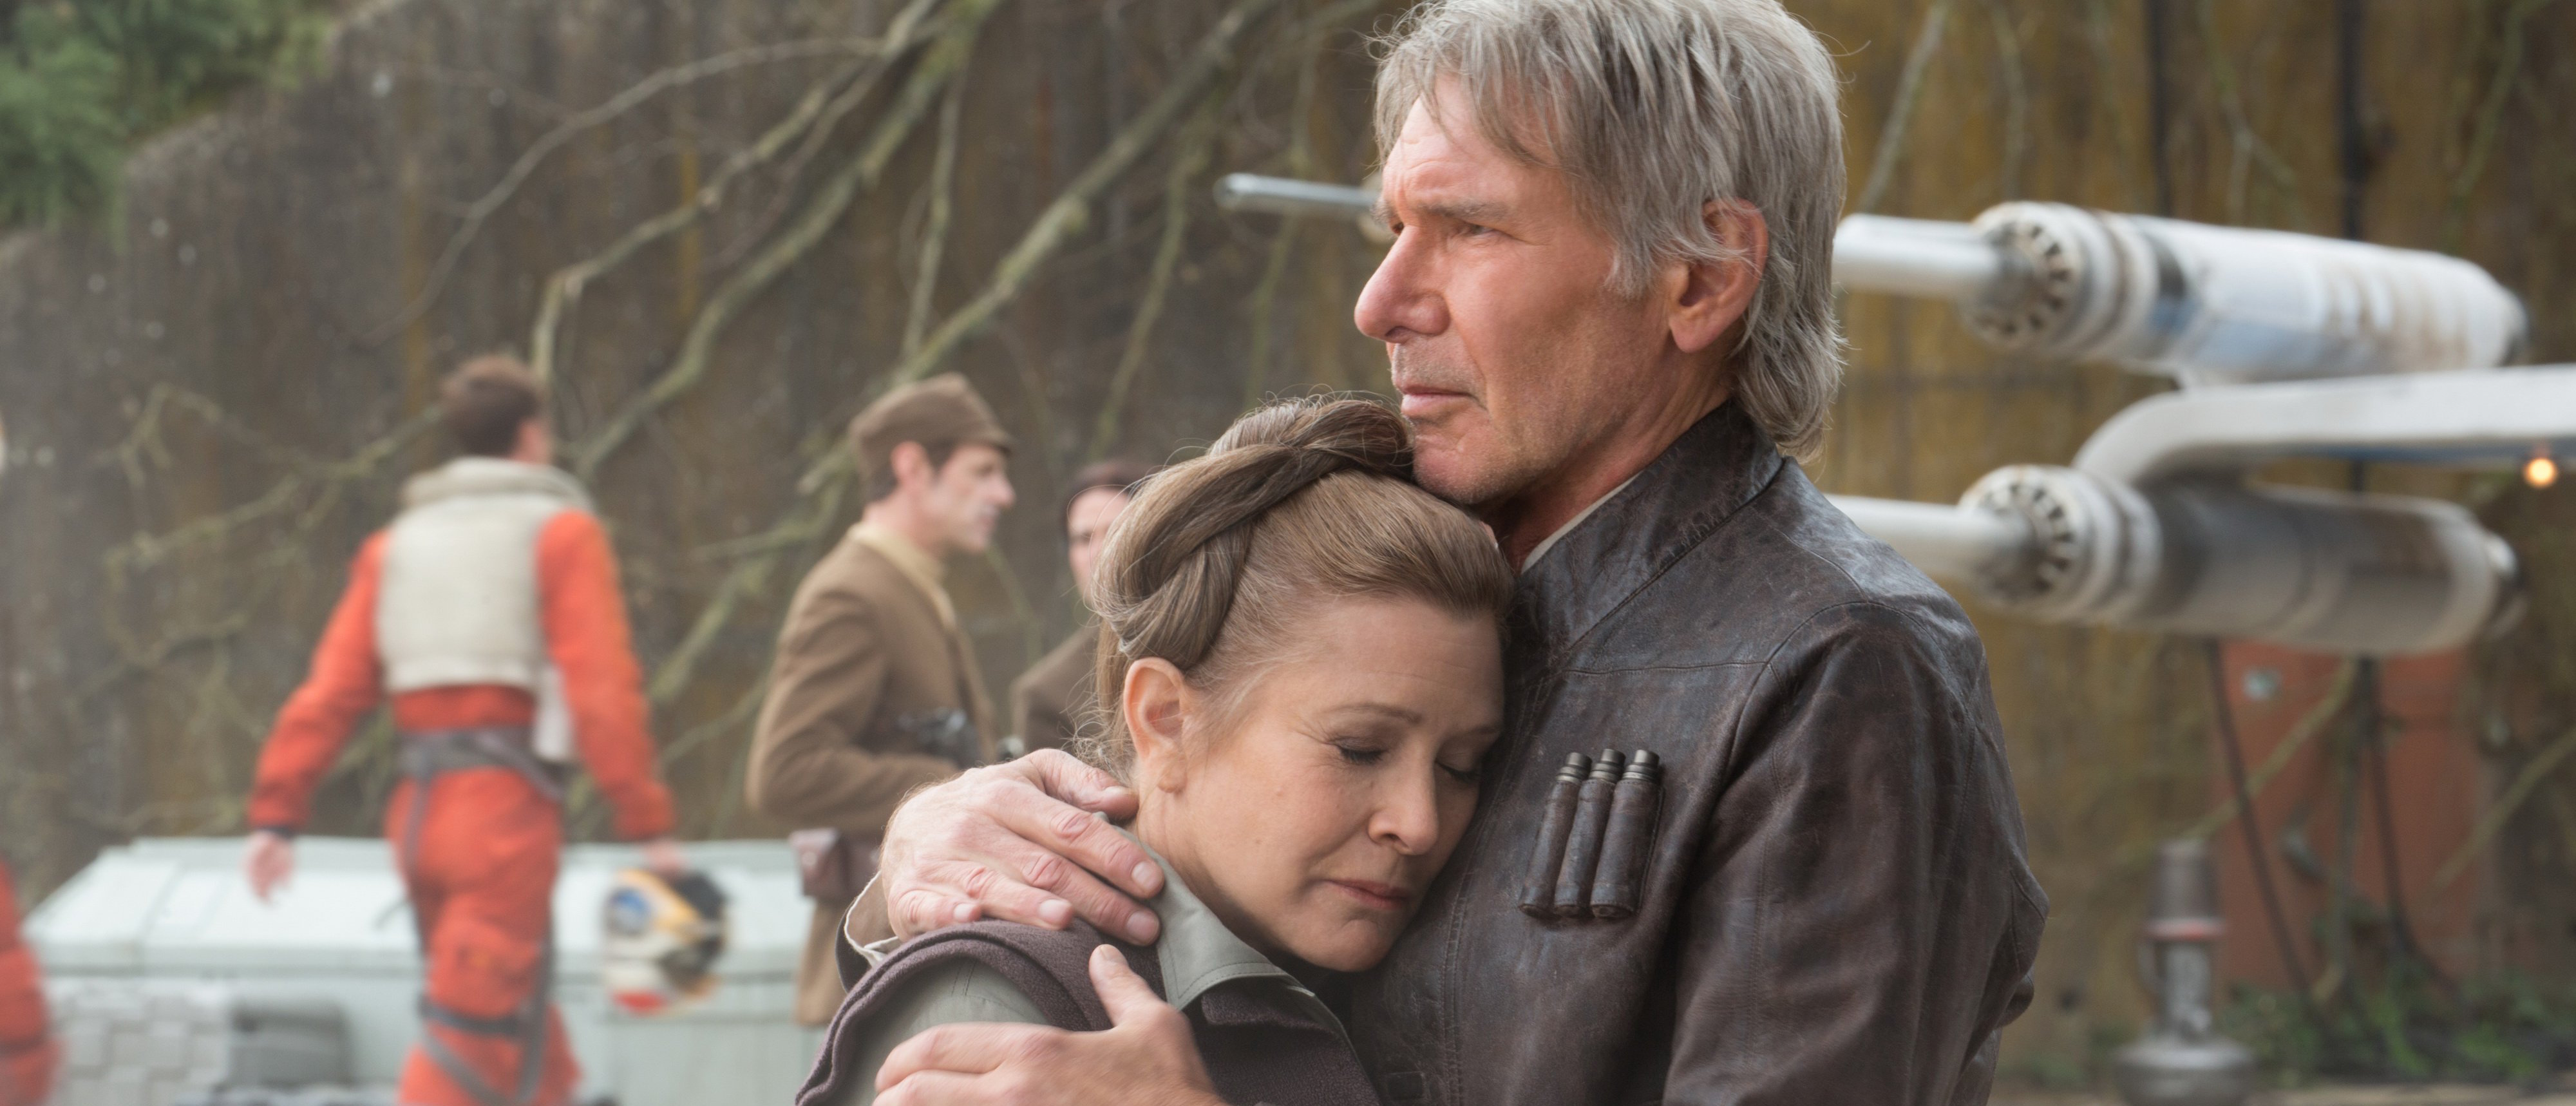 Growing Up With Star Wars, I Never Expected It to Mirror So Much of Today's Inequalities